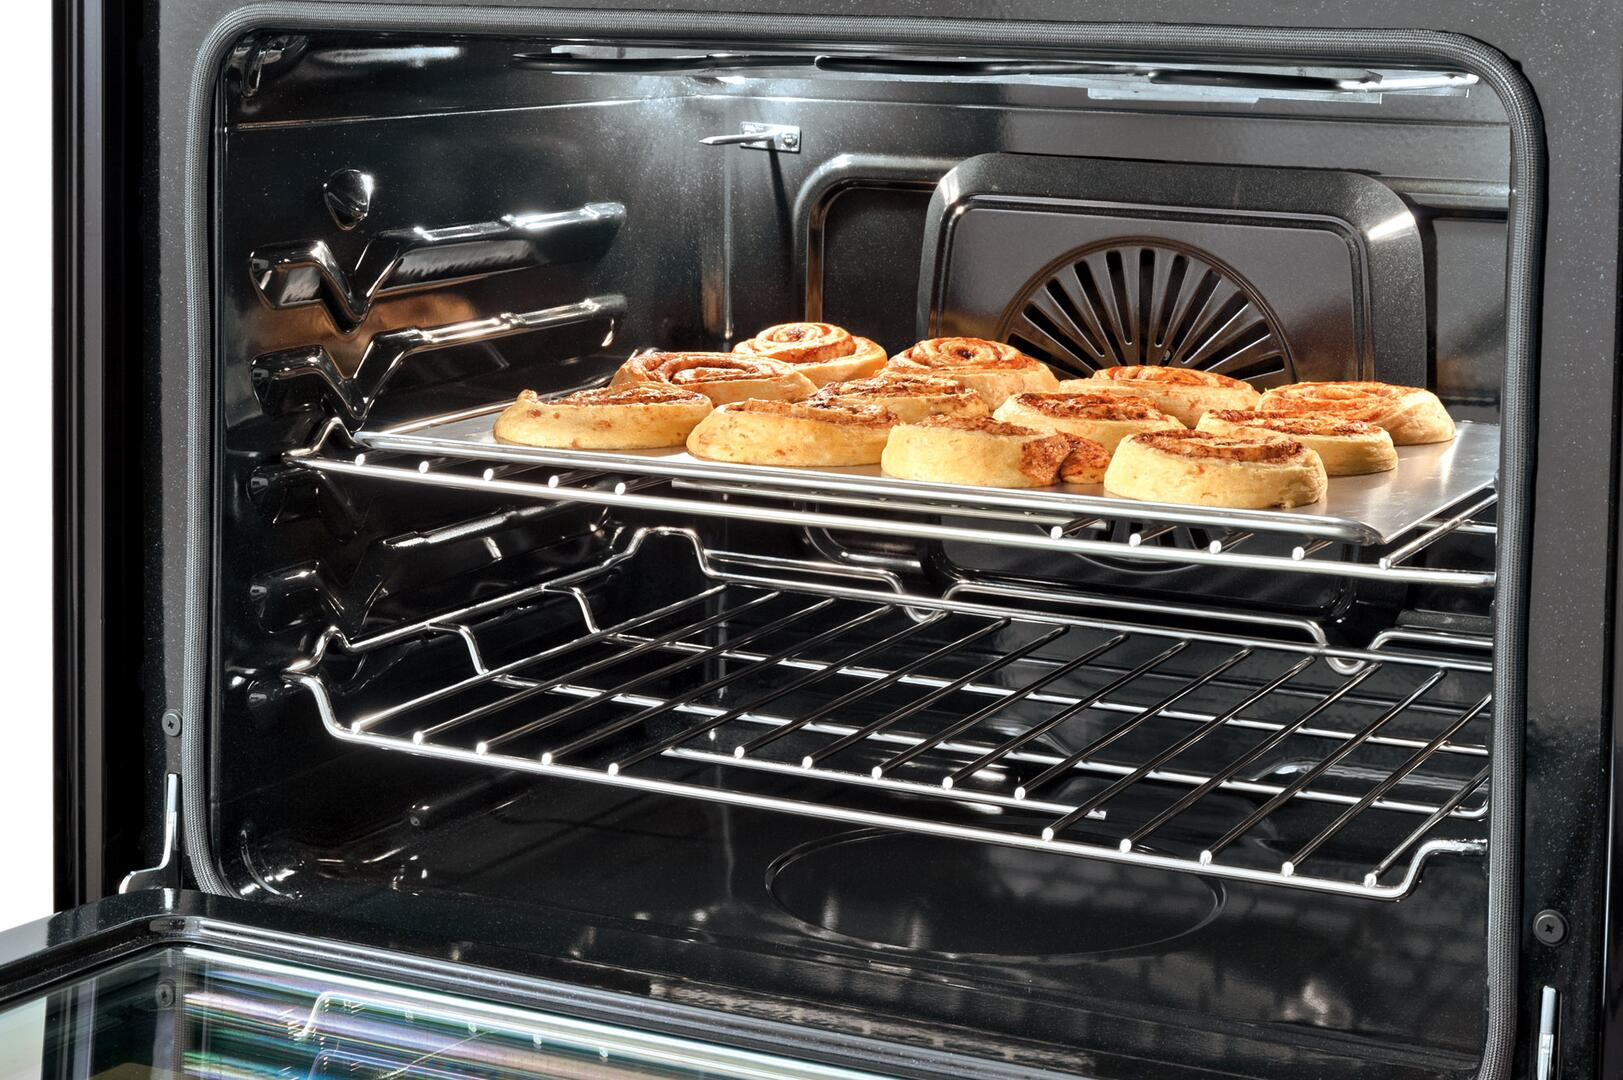 Frigidaire Fget2765pf 27 Inch Double Wall Oven In